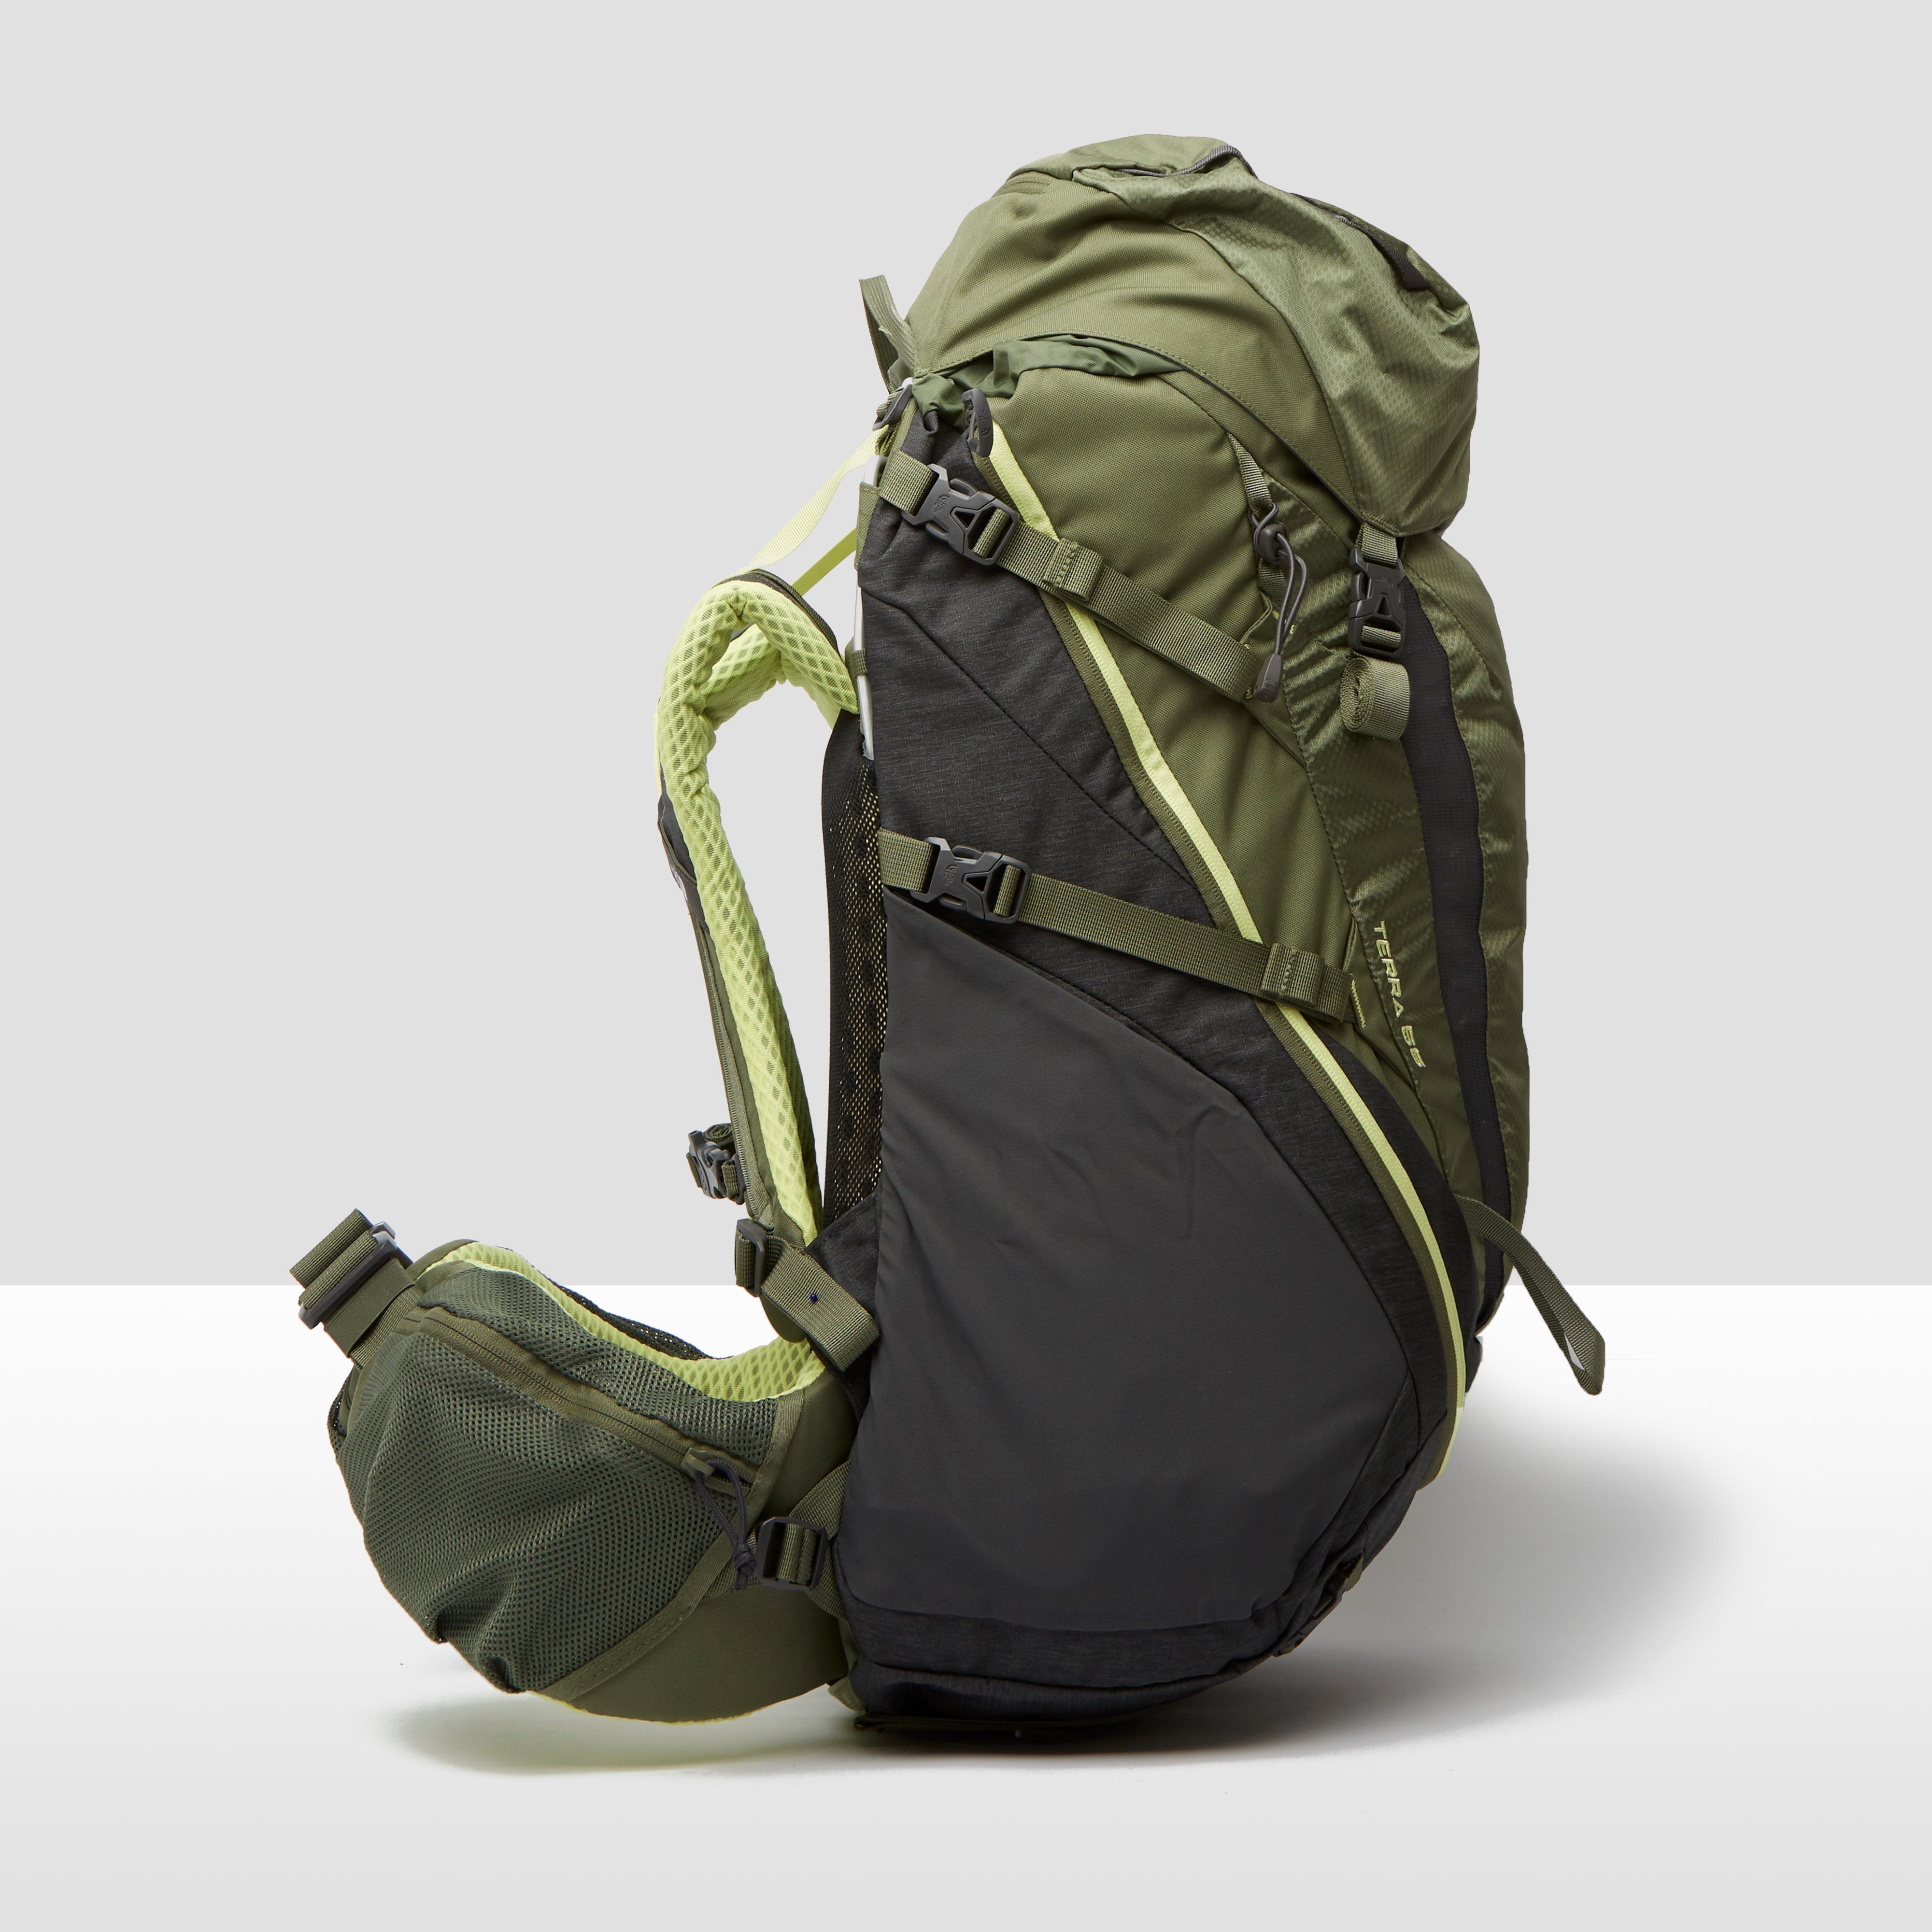 THE NORTH FACE TERRA BACKPACK 55 LITER GROEN